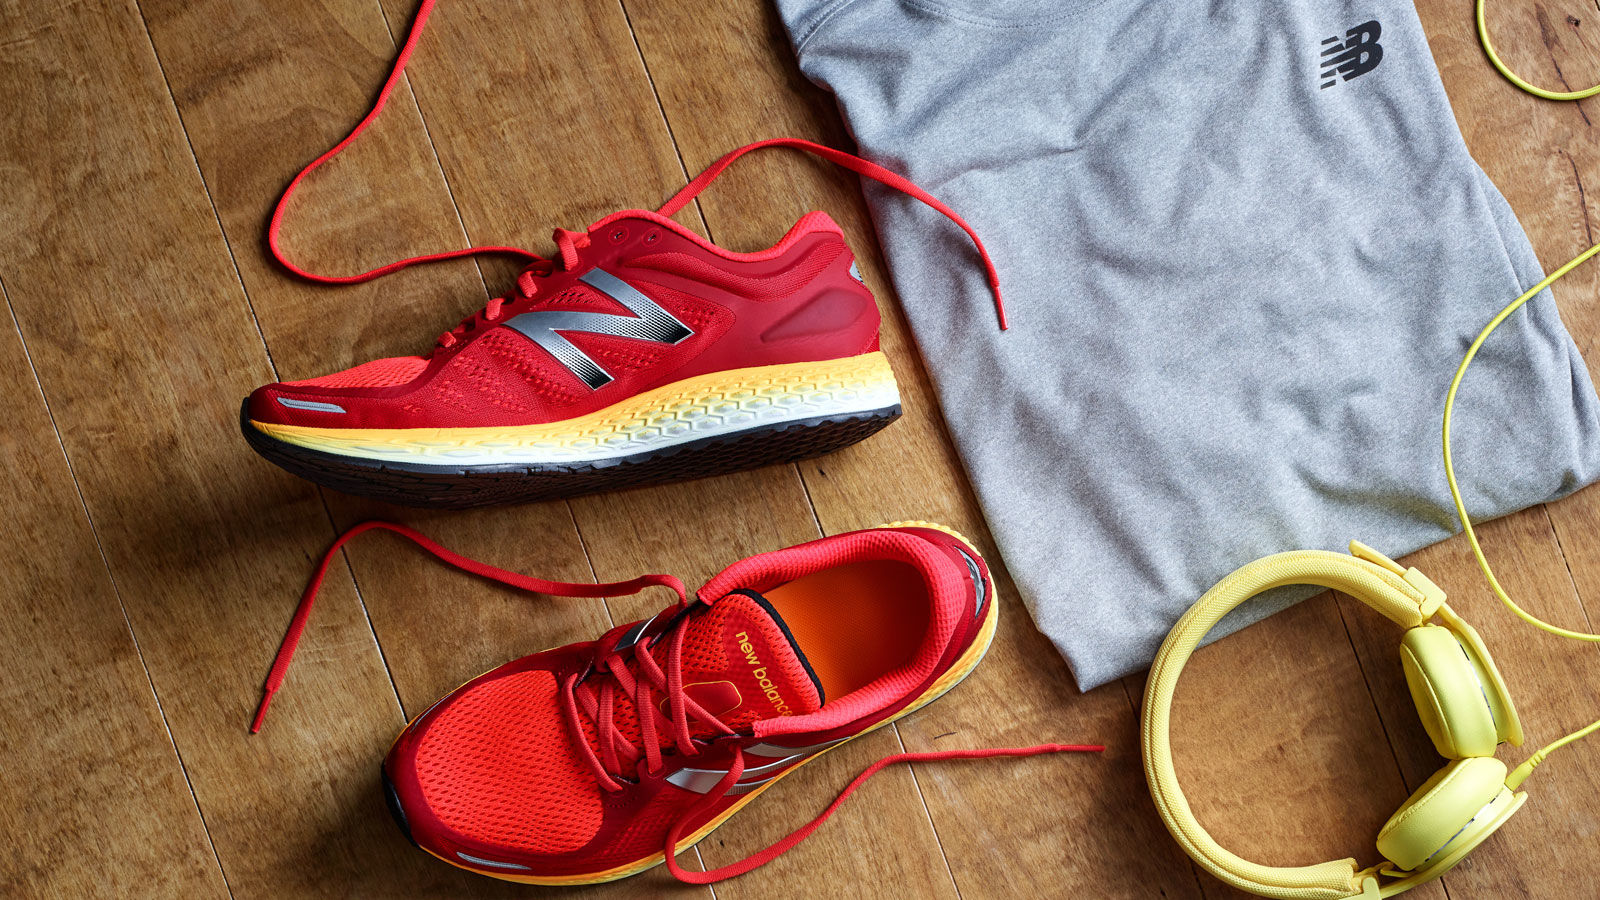 Gear Lending with New Balance® at The Westin Buckhead Atlanta